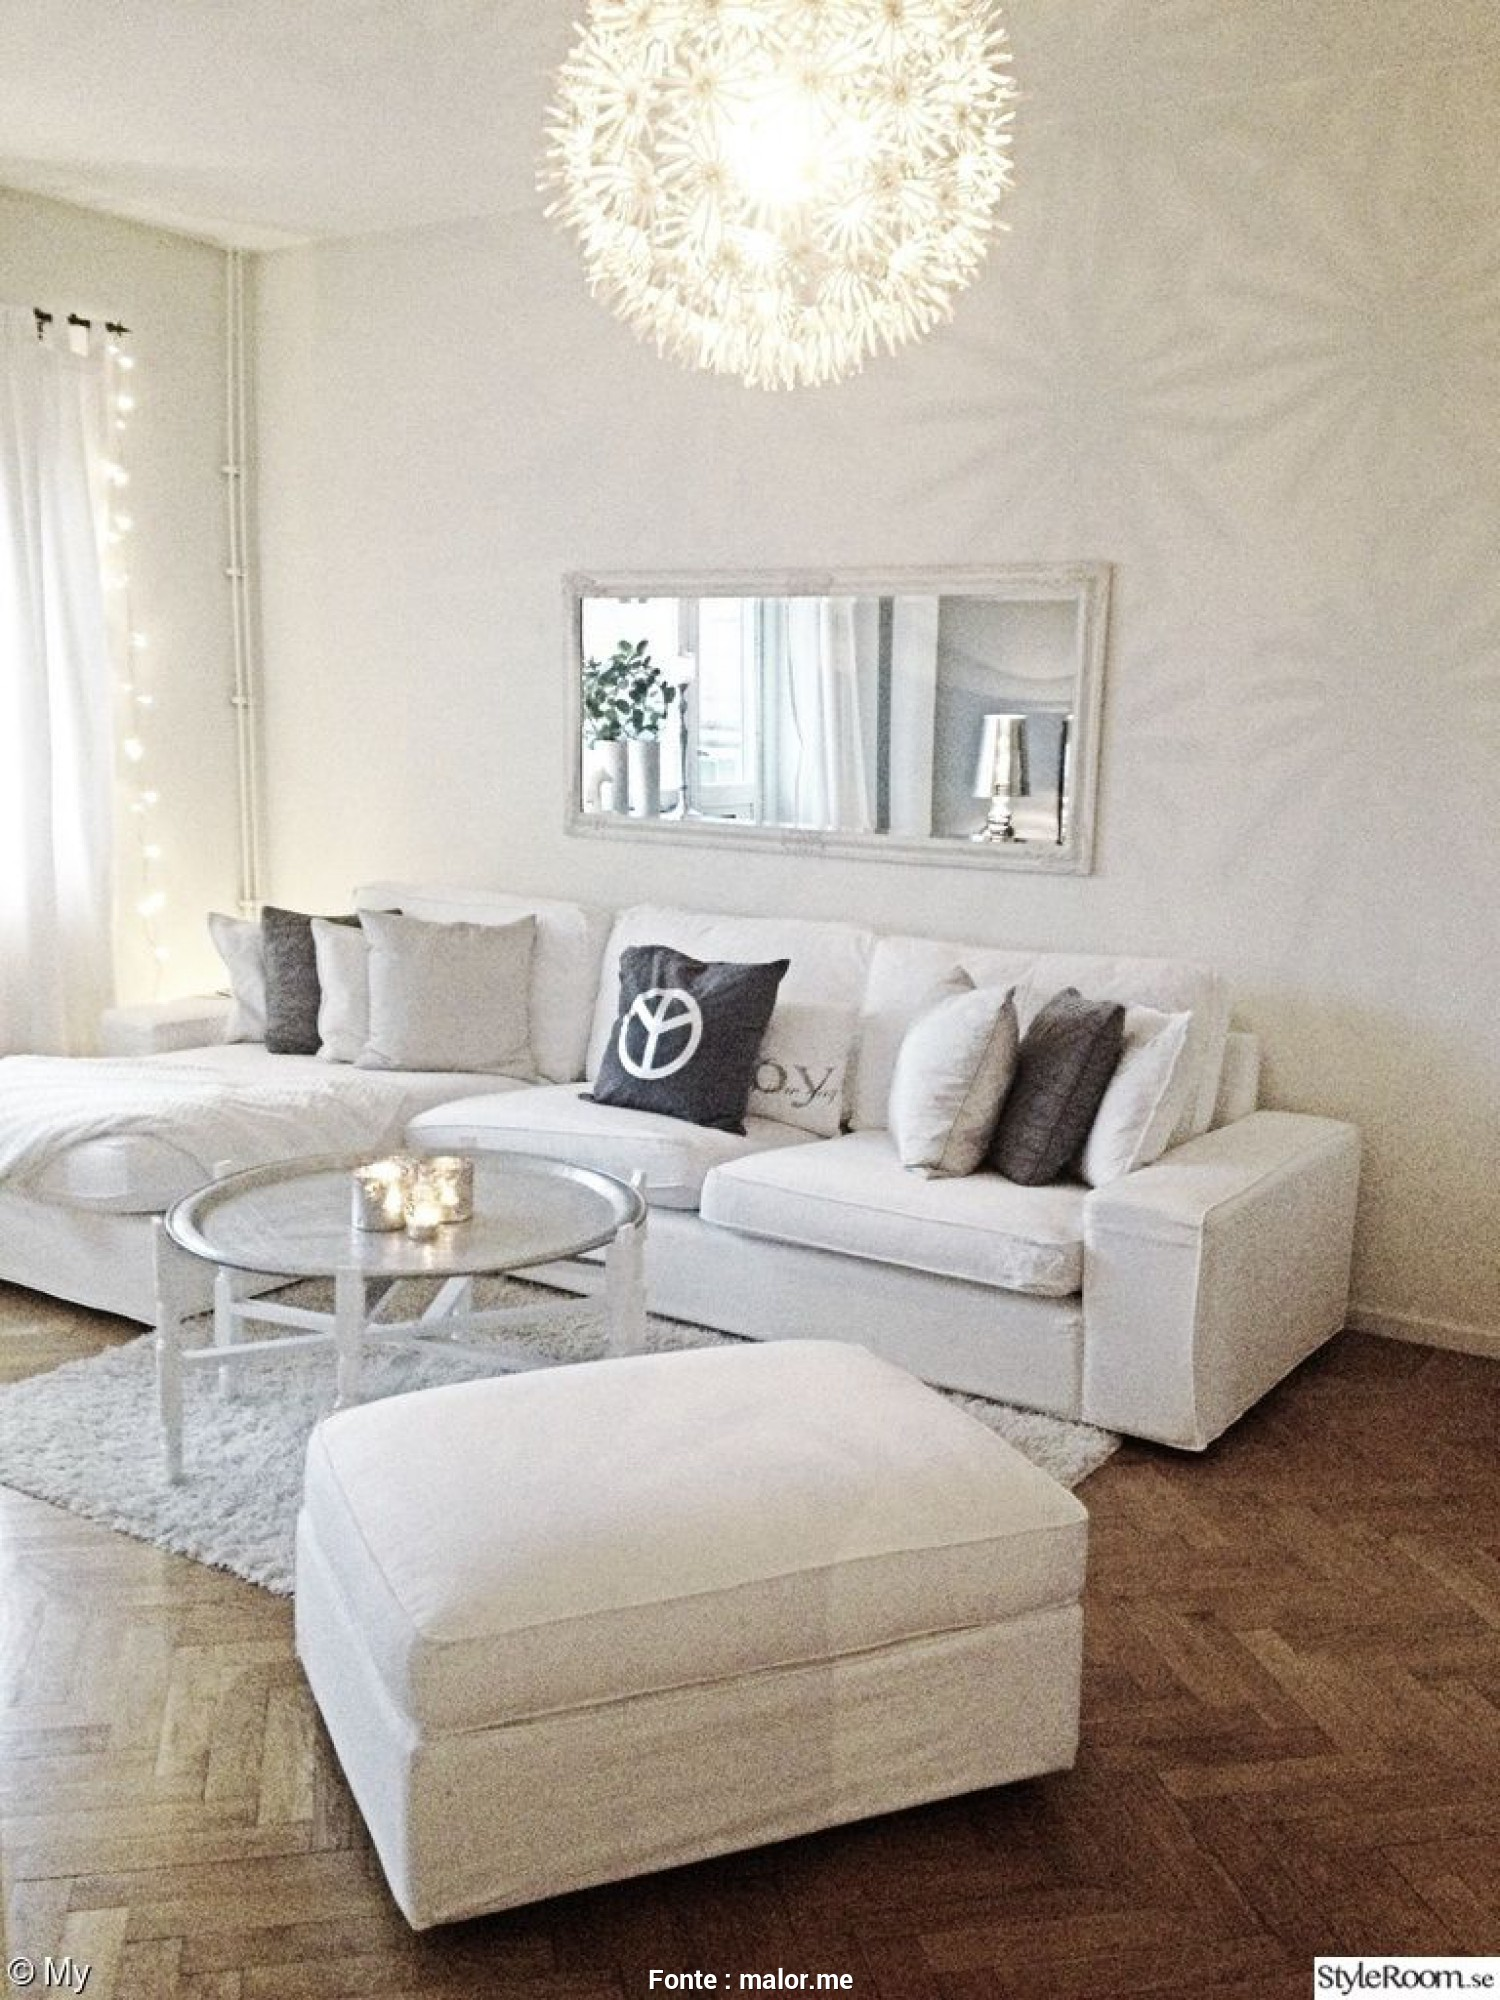 Divano Shabby Chic Ikea, Locale Divani Shabby Chic Ikea Decorate Your Living Room With, Kivik Sofa From Ikea Decorate Your